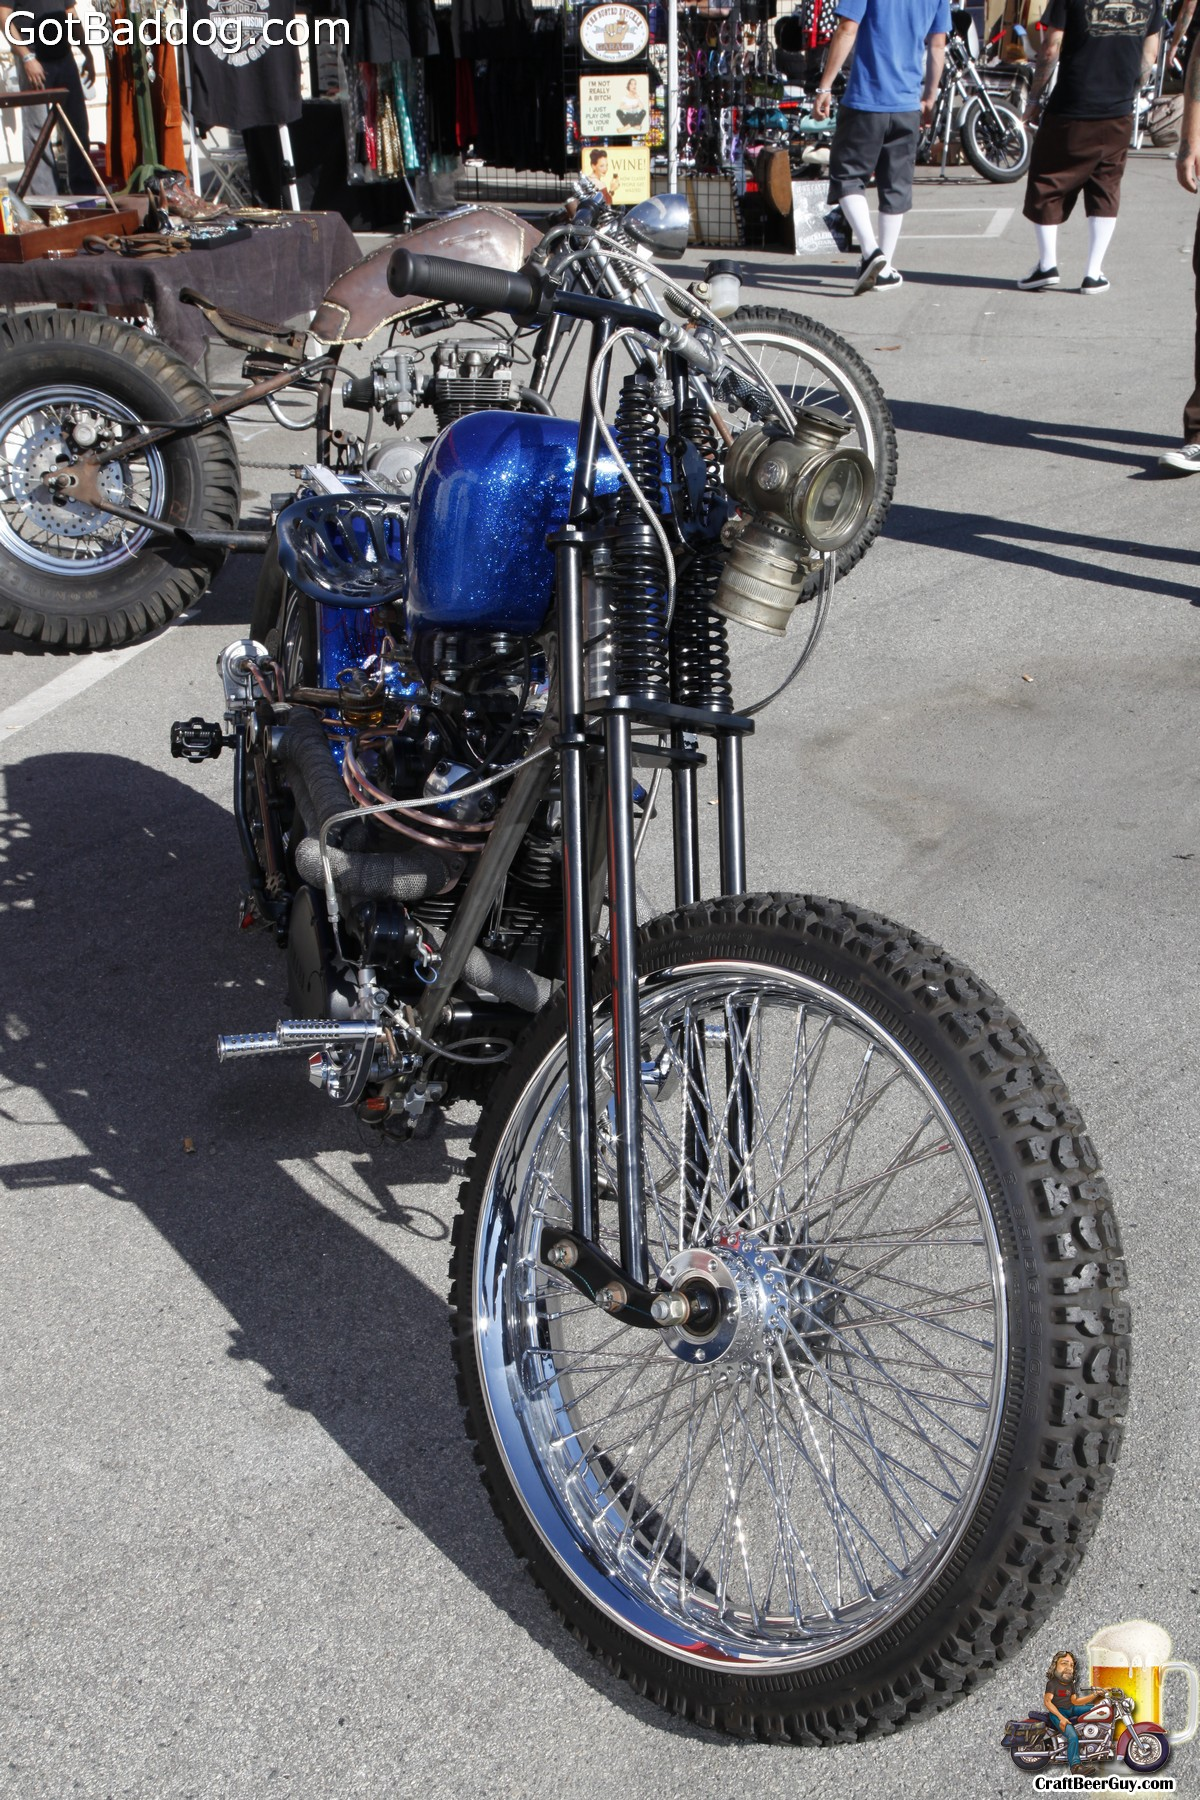 get-to-choppers_4973